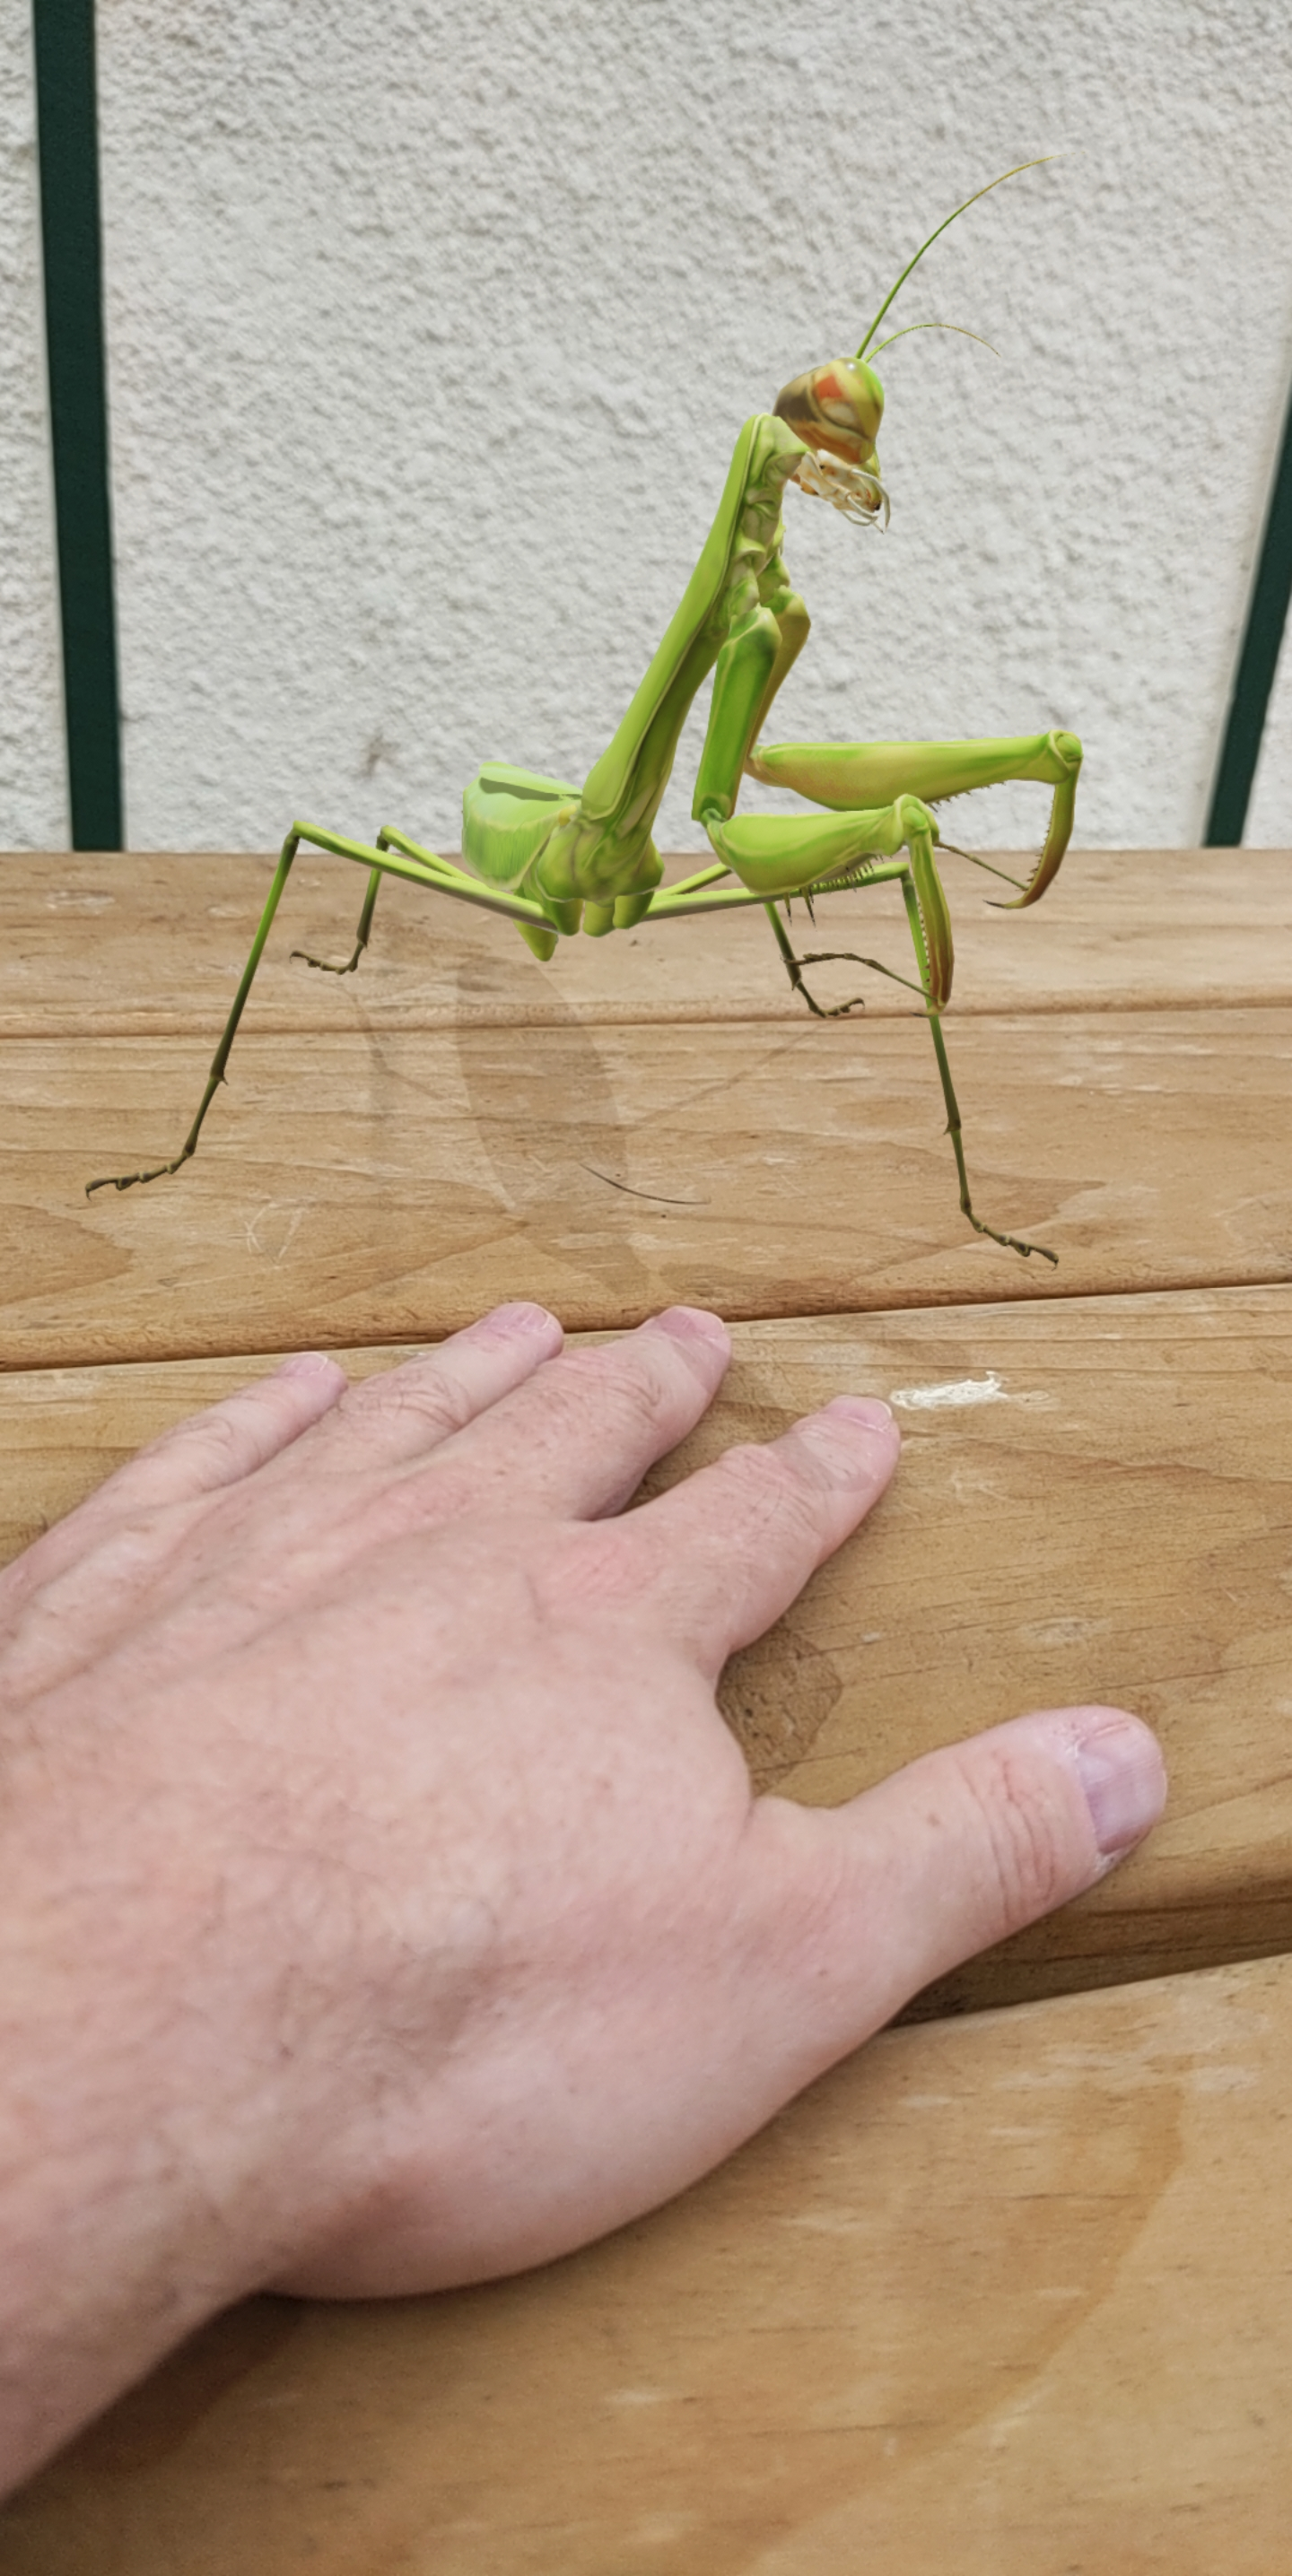 3D Praying Mantis in situ - Google search and get one yourself